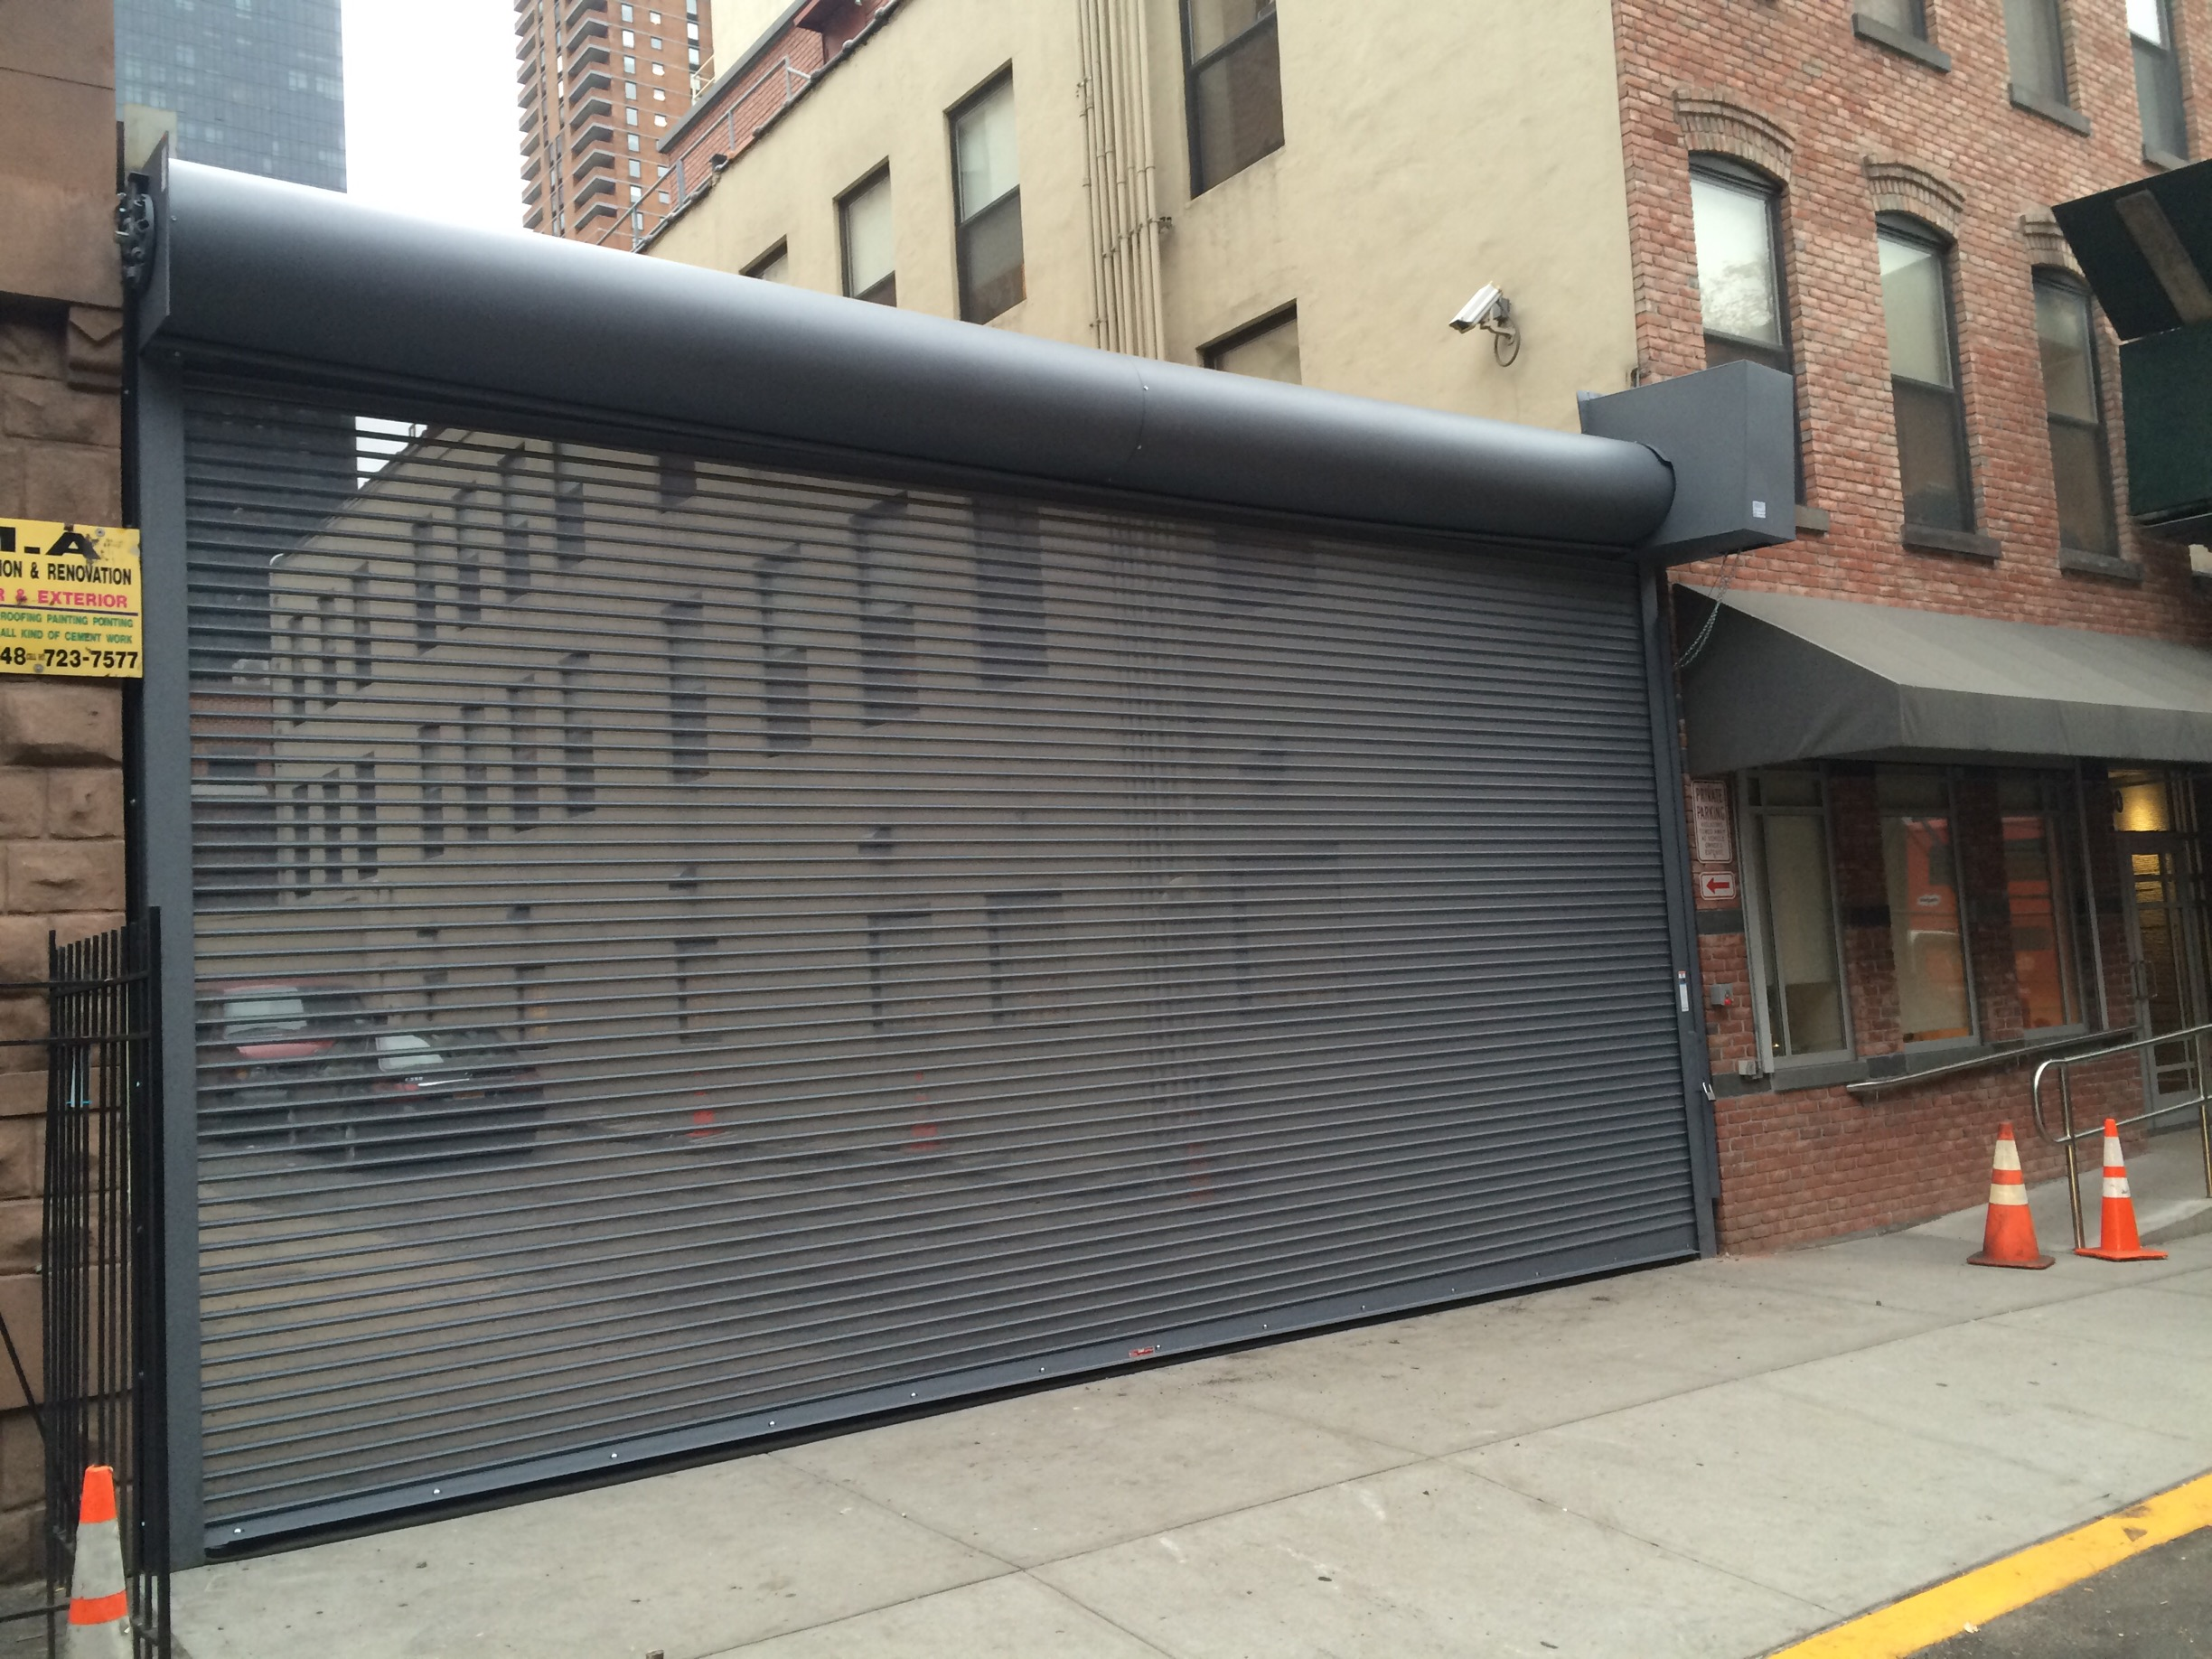 repair mesh perforated punched hole open air visibility rolling door shutter new york city new jersey & Finest Doorman Blog | Loading Dock New Jersey - New York